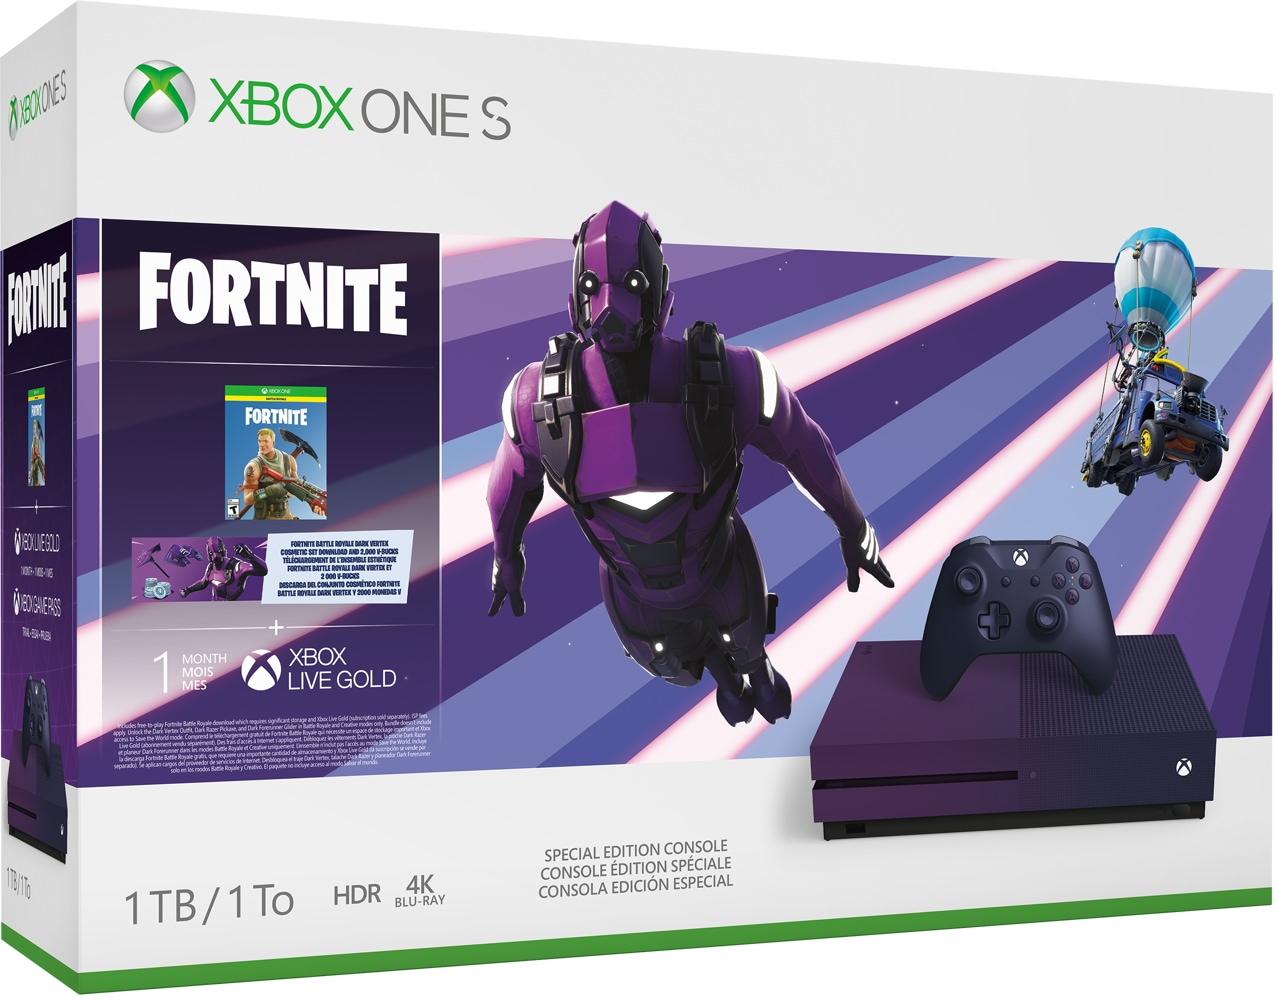 Xbox One S Fortnite Special Edition bundle box art